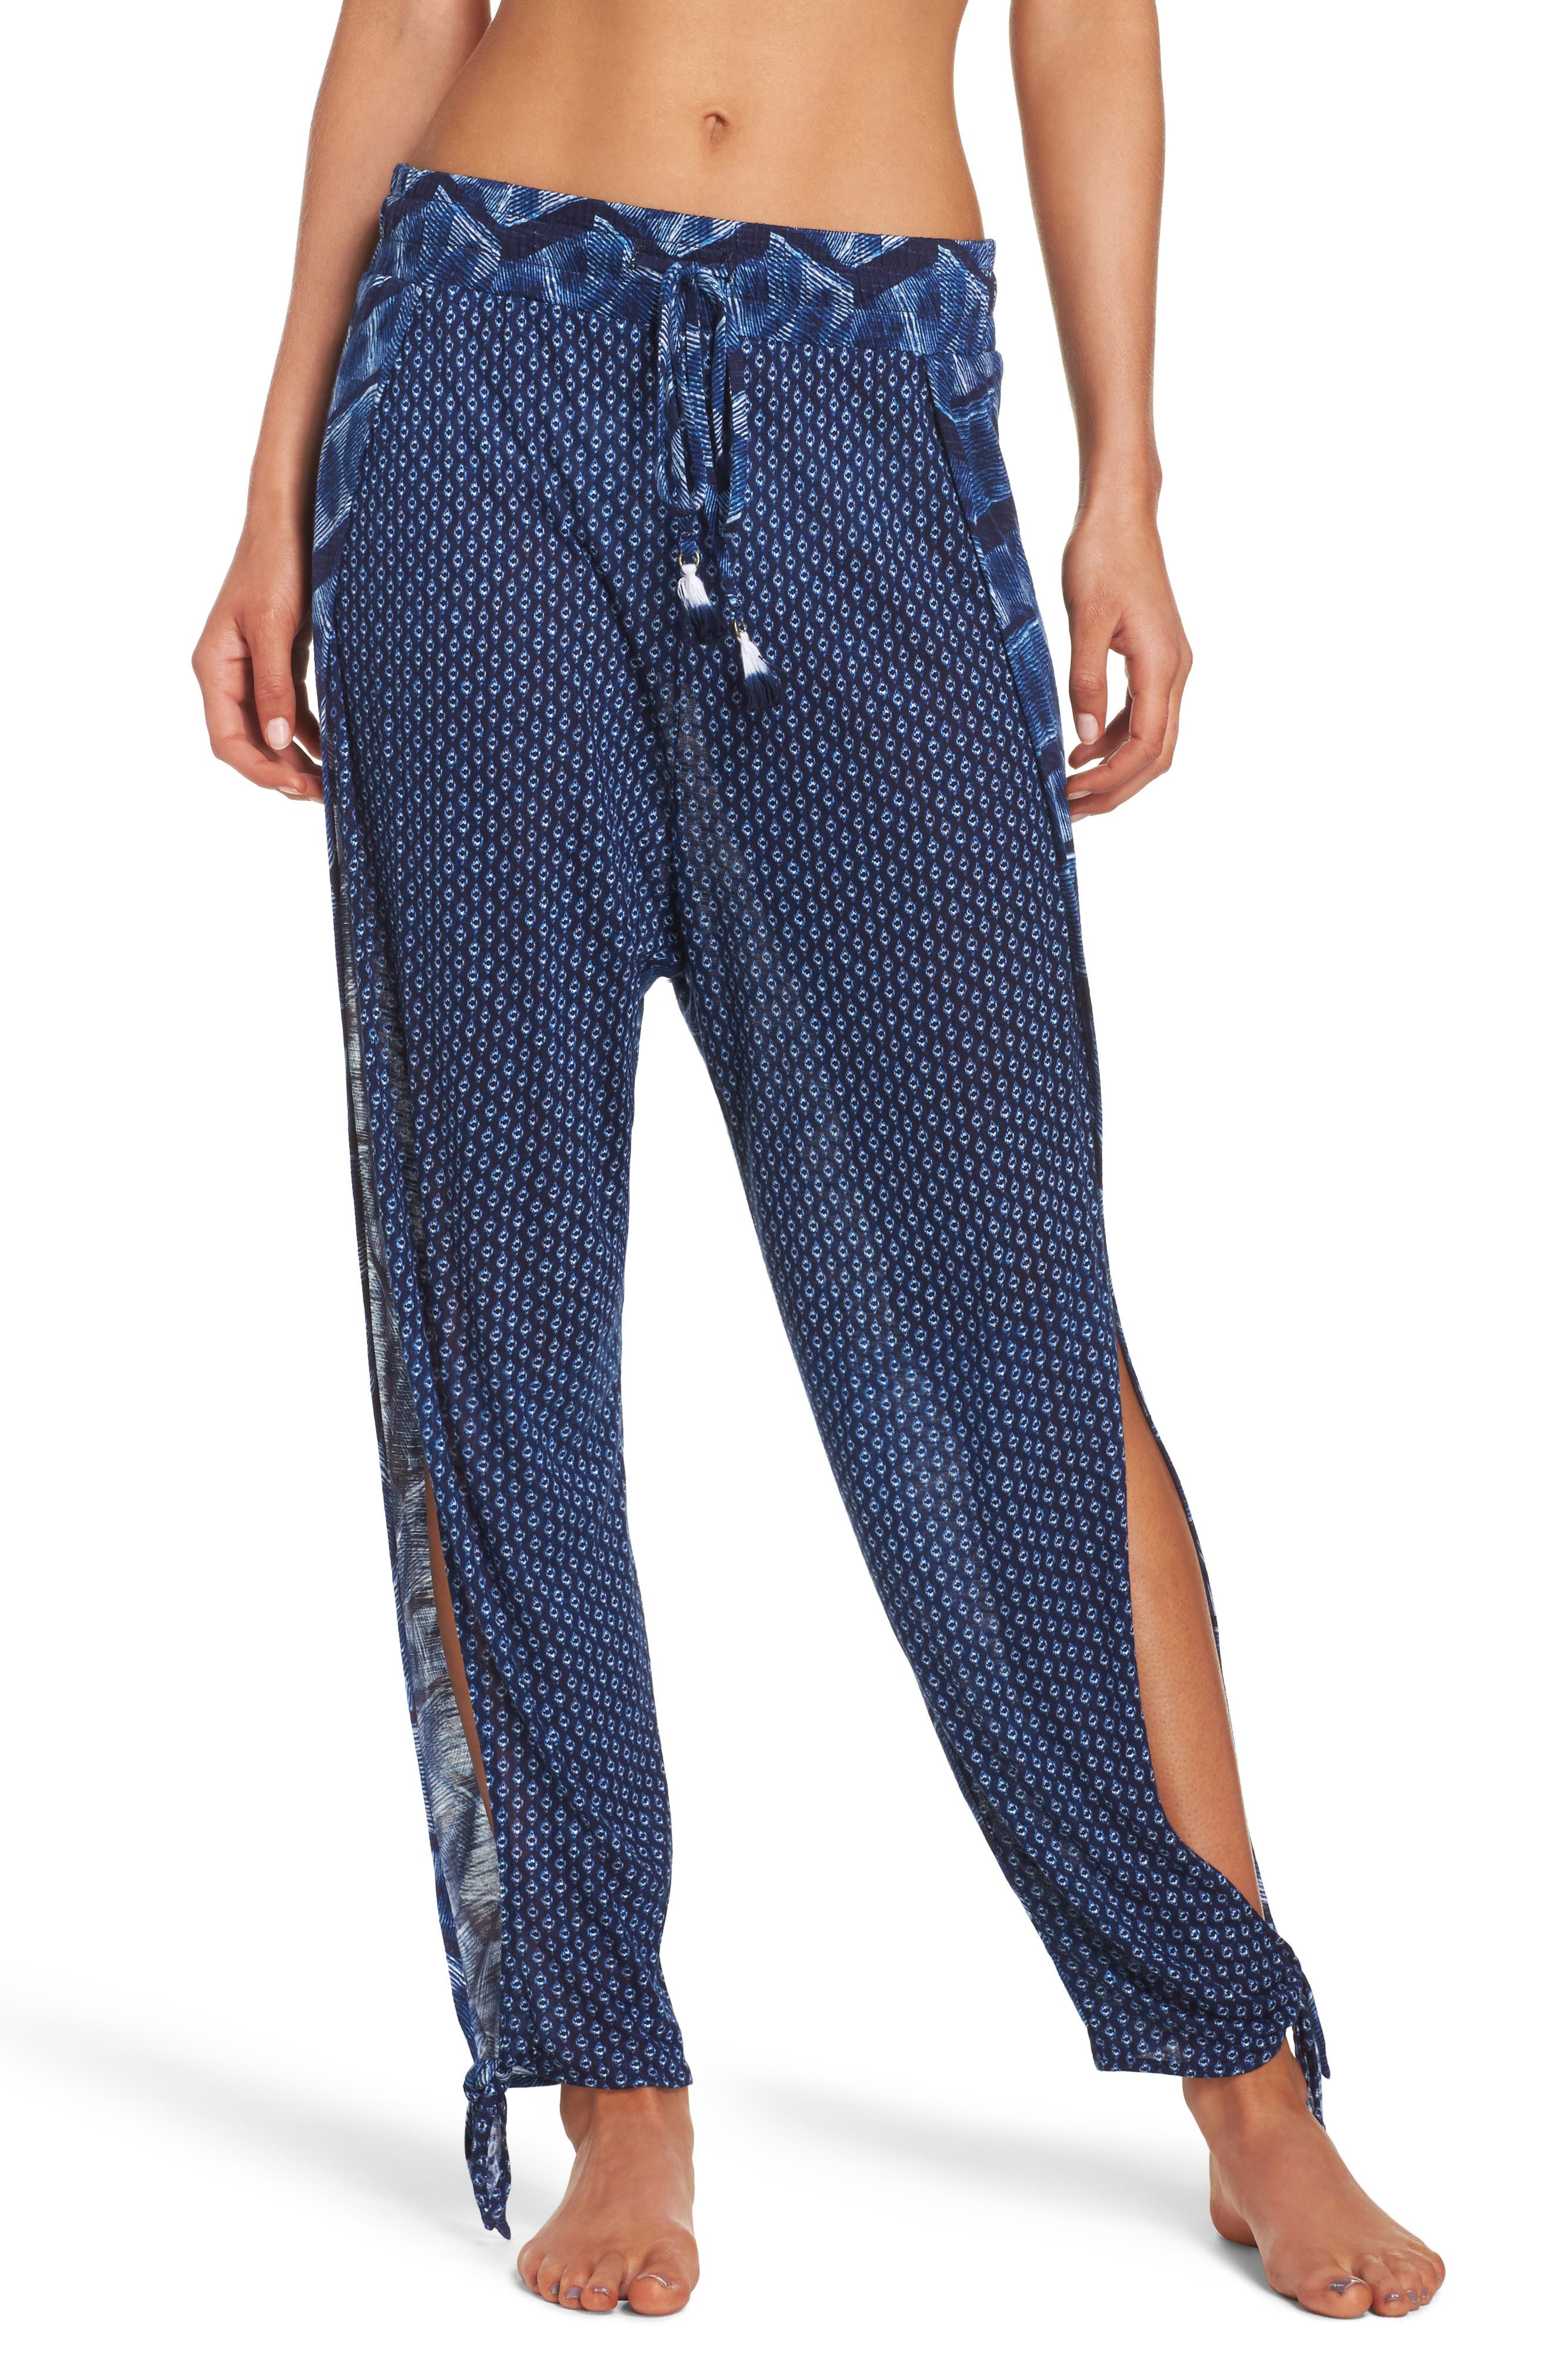 Lucky Brand Nomad Ankle Tie Cover-Up Pants